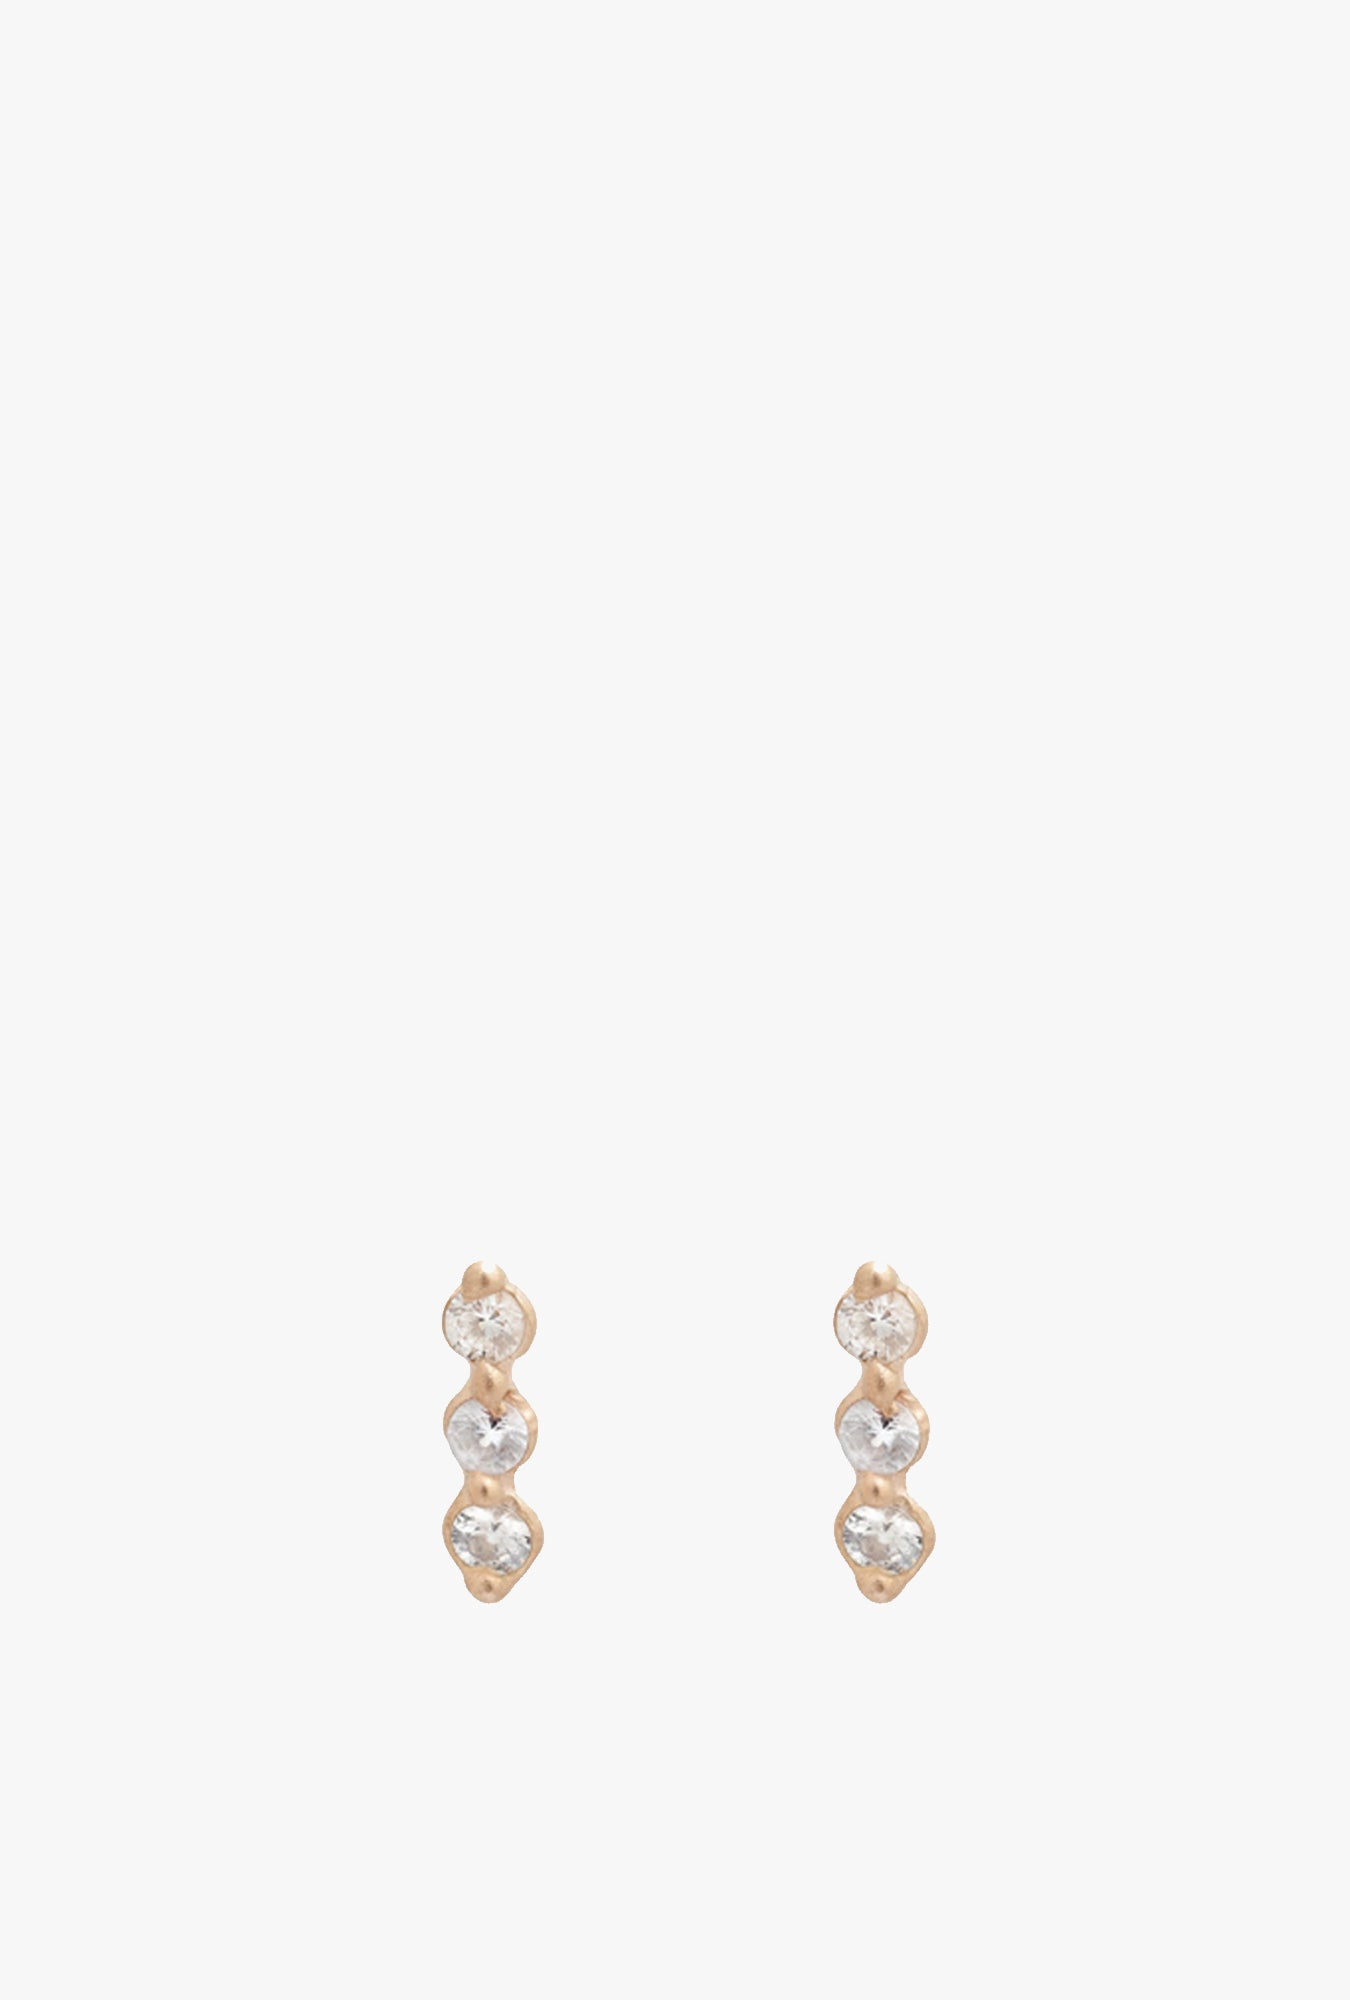 Elara 3 Point Earrings